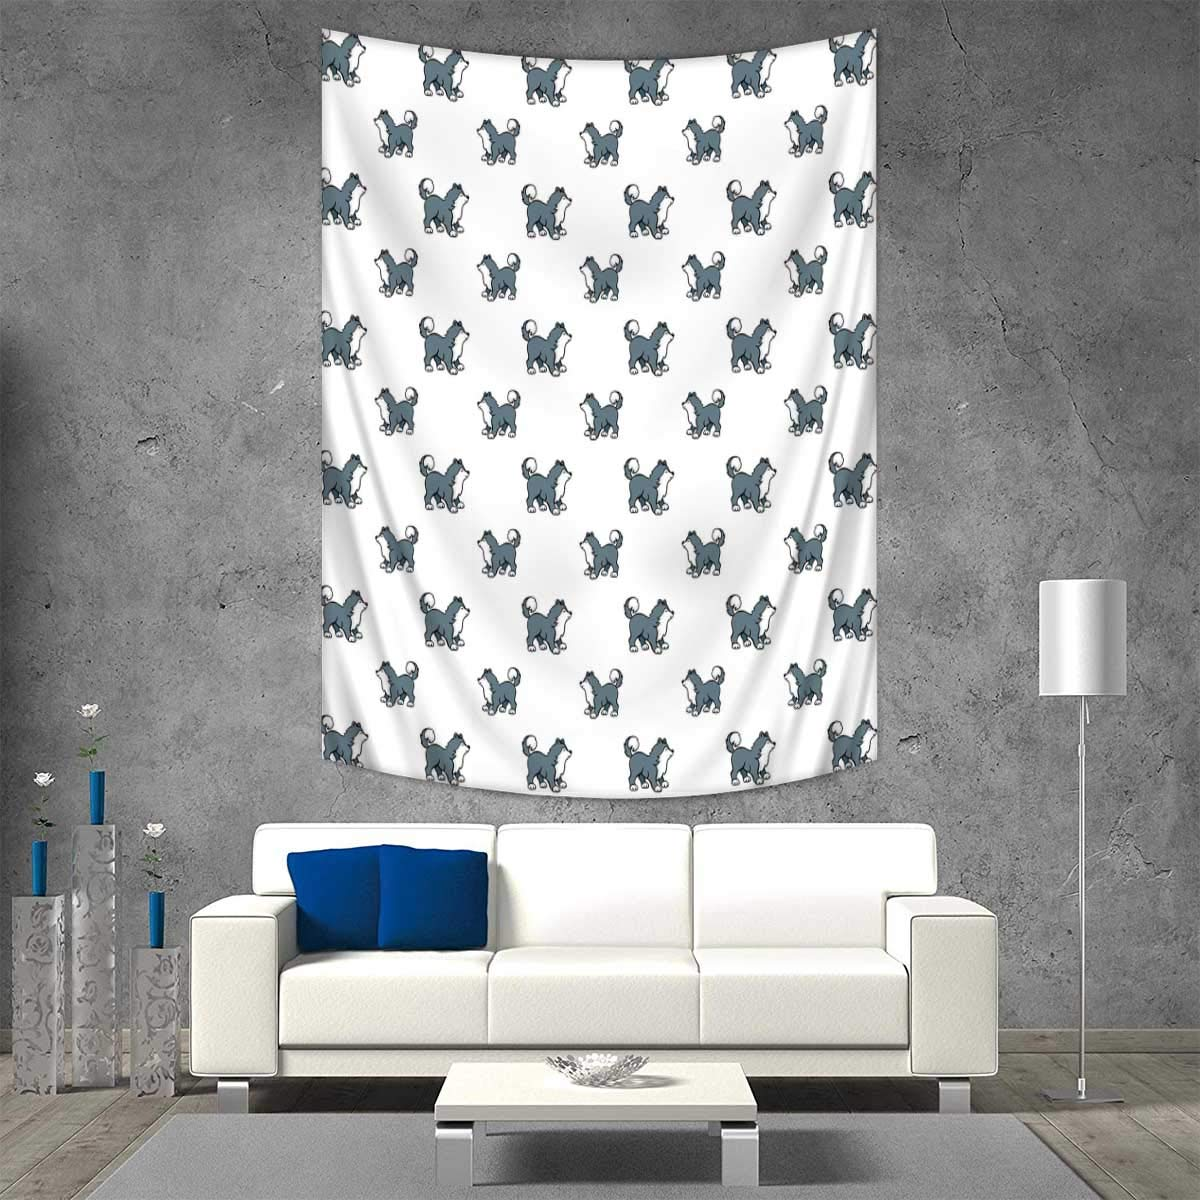 color18 54W x 84L INCH color18 54W x 84L INCH Anhuthree Dog Wall Tapestry Husky Puppy Siberian Energetic Pet Alaskan Origin Sketch Style Cartoon Cold Home Decorations Living Room Bedroom 54W x 84L INCH bluee Grey Black White